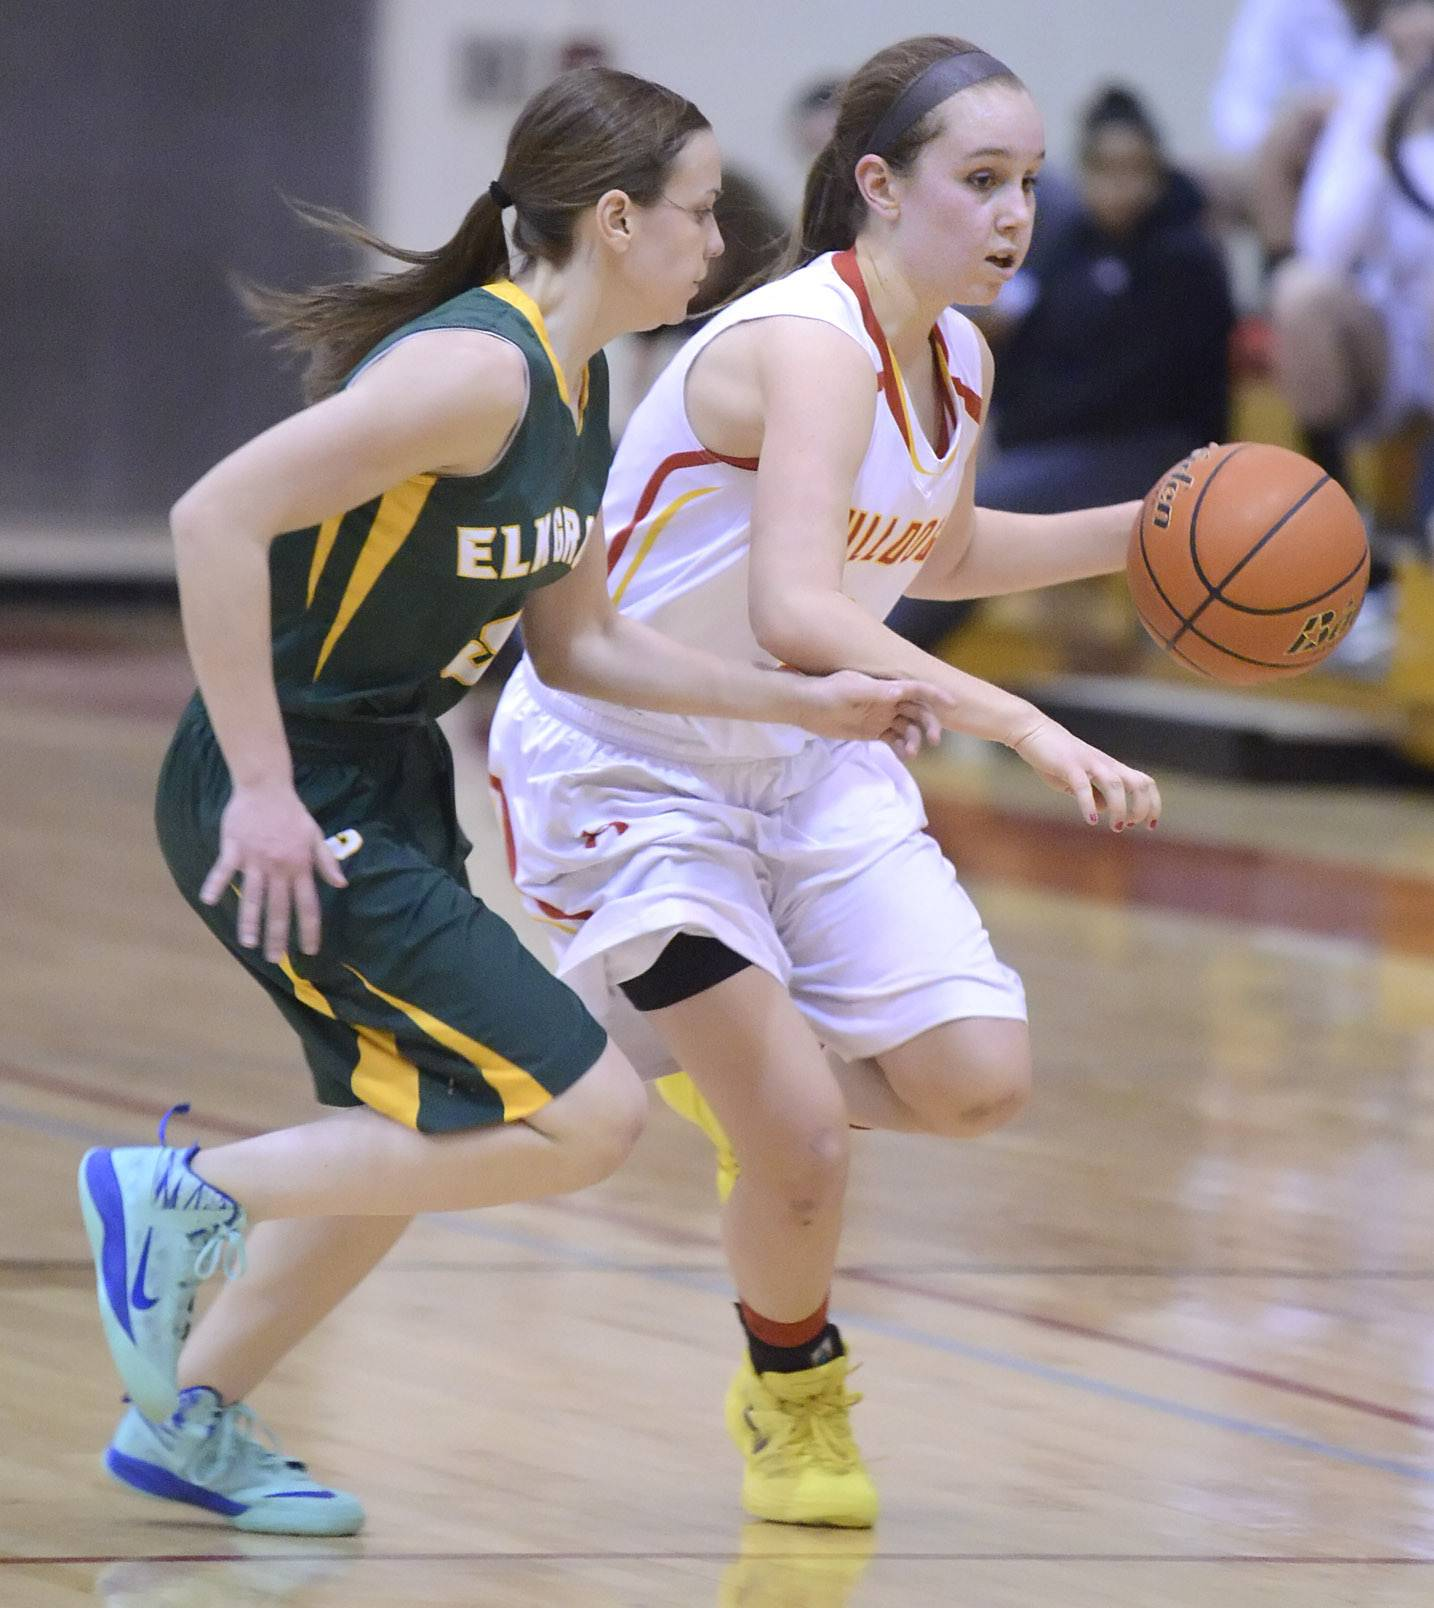 Batavia's Bethany Orman dribbles past Elk Grove's Abbey Sloan in the fourth quarter on Tuesday, February 18.